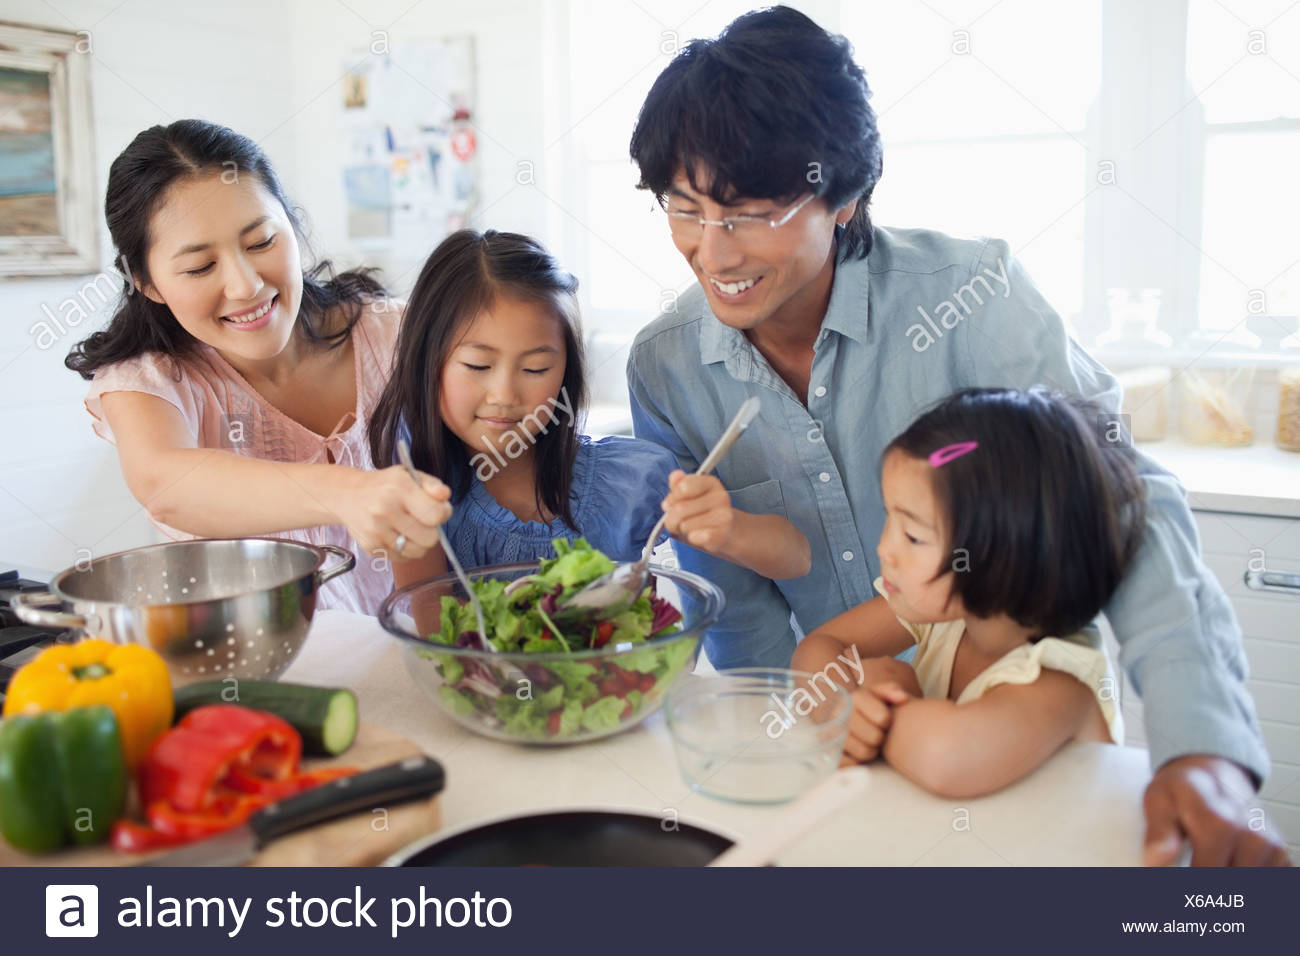 The mother and daughter toss the salad as the father and other daughter watch - Stock Image